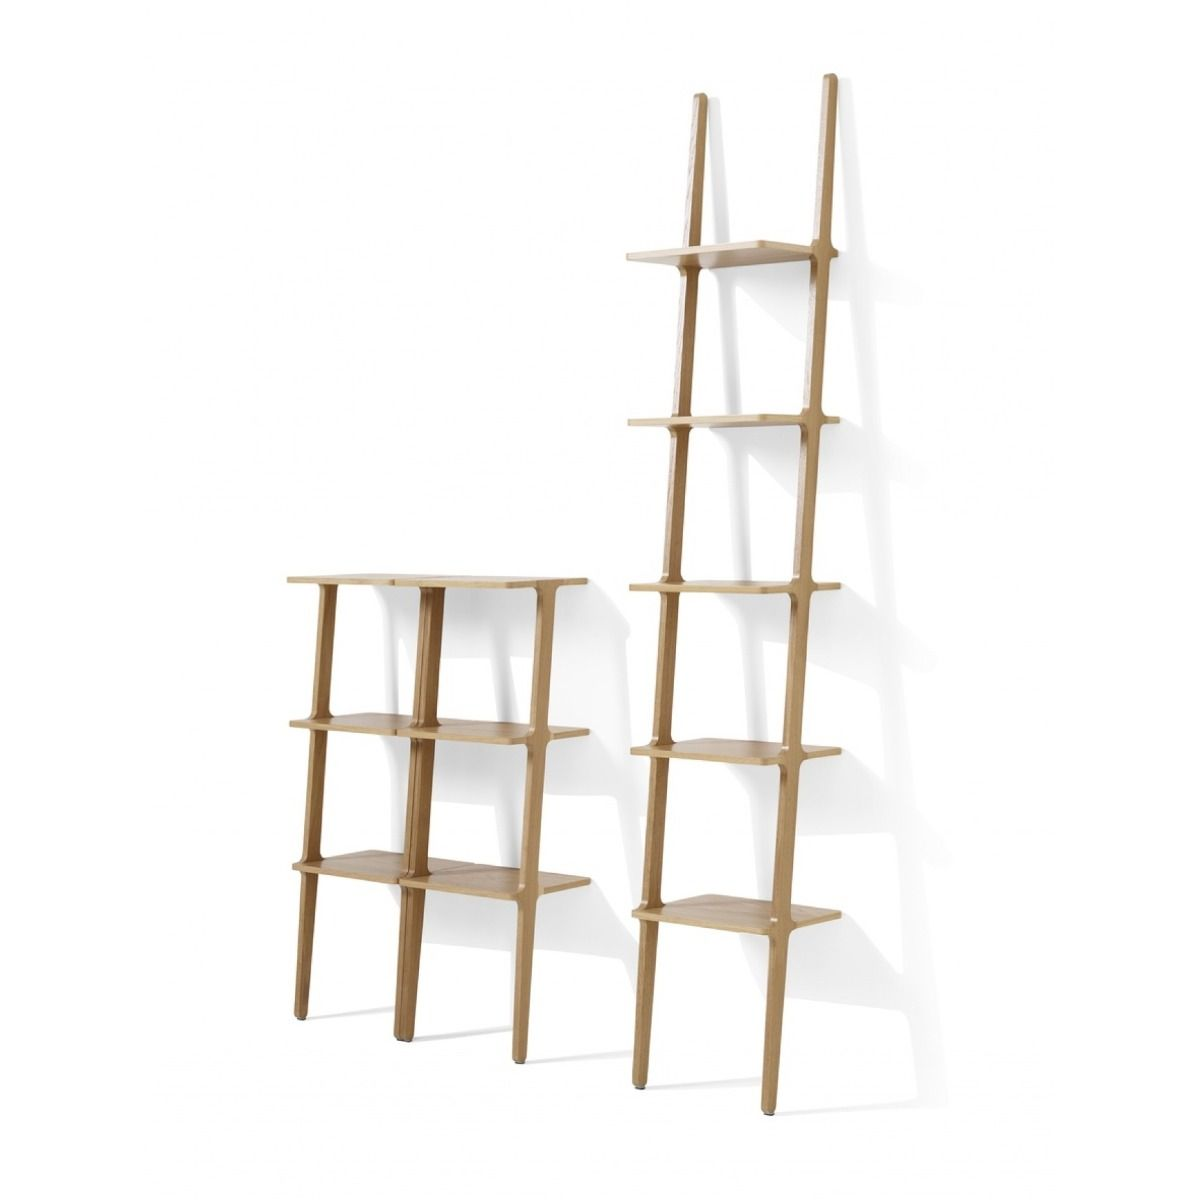 Swedese Libri Shelves